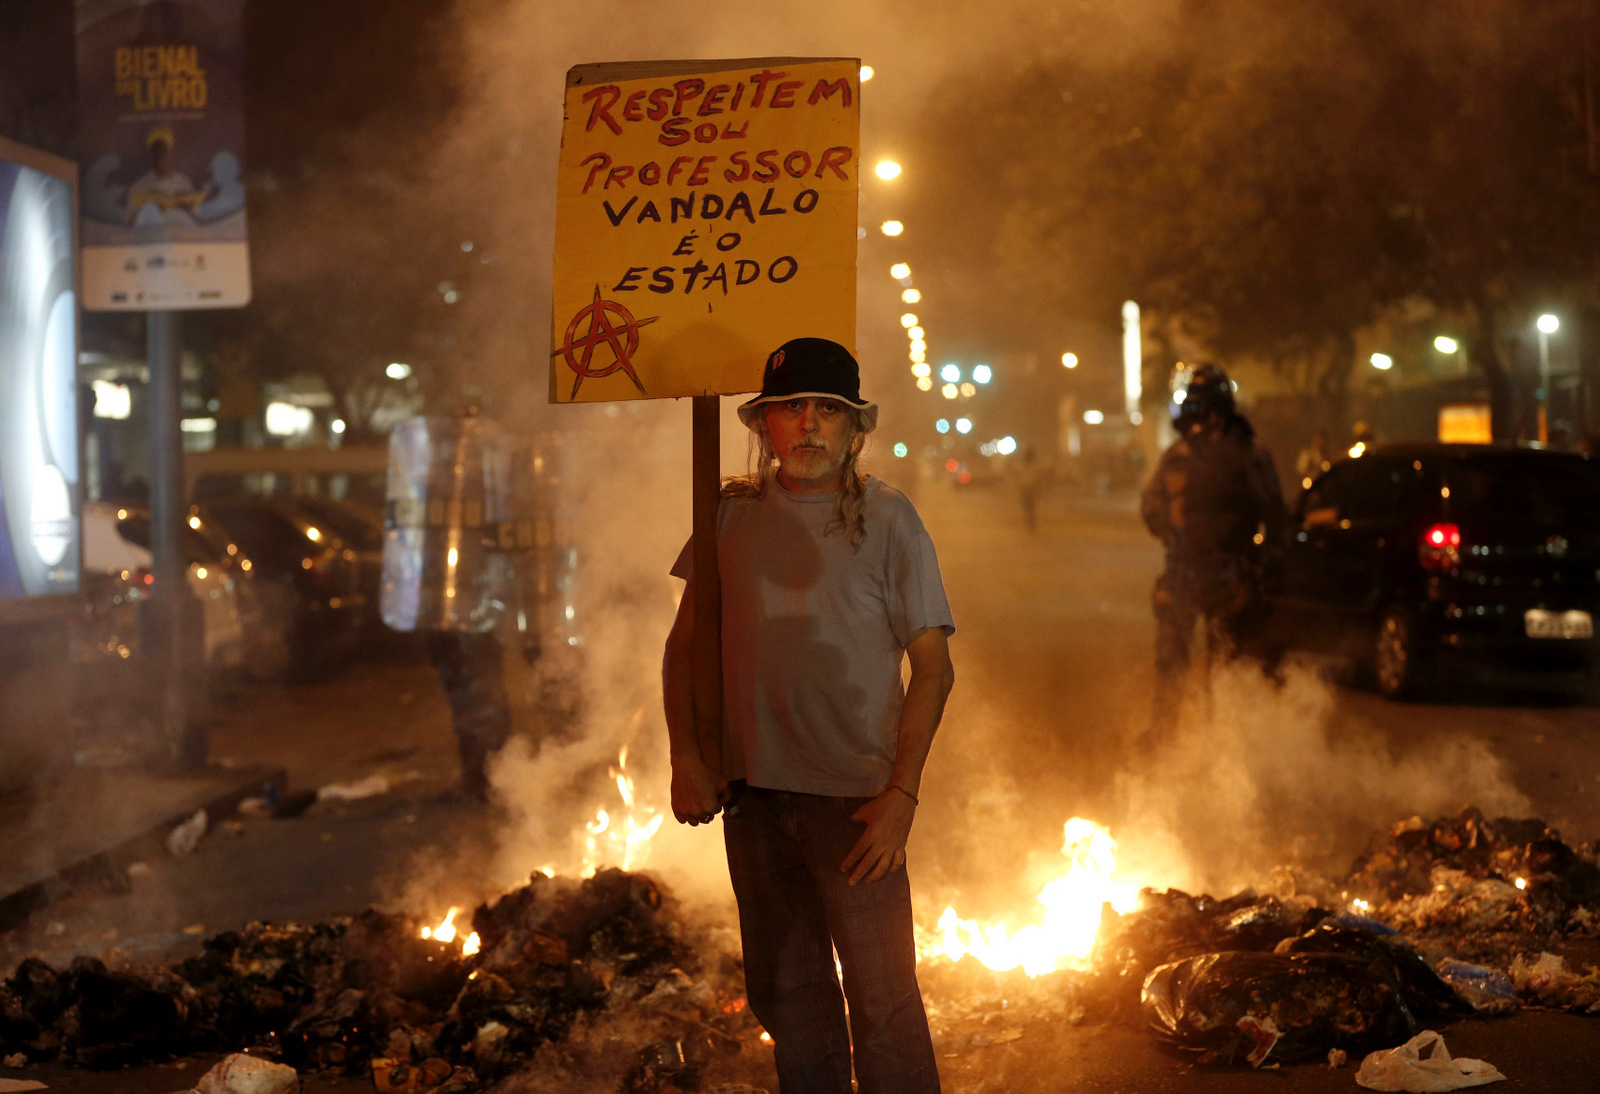 "A man holds a sign that reads in Portuguese ""Respect, I'm a teacher, the vandal is the state"" at a burning barricade set up by protesters in Rio de Janeiro, Brazil. (AP/Silvia Izquierdo)"